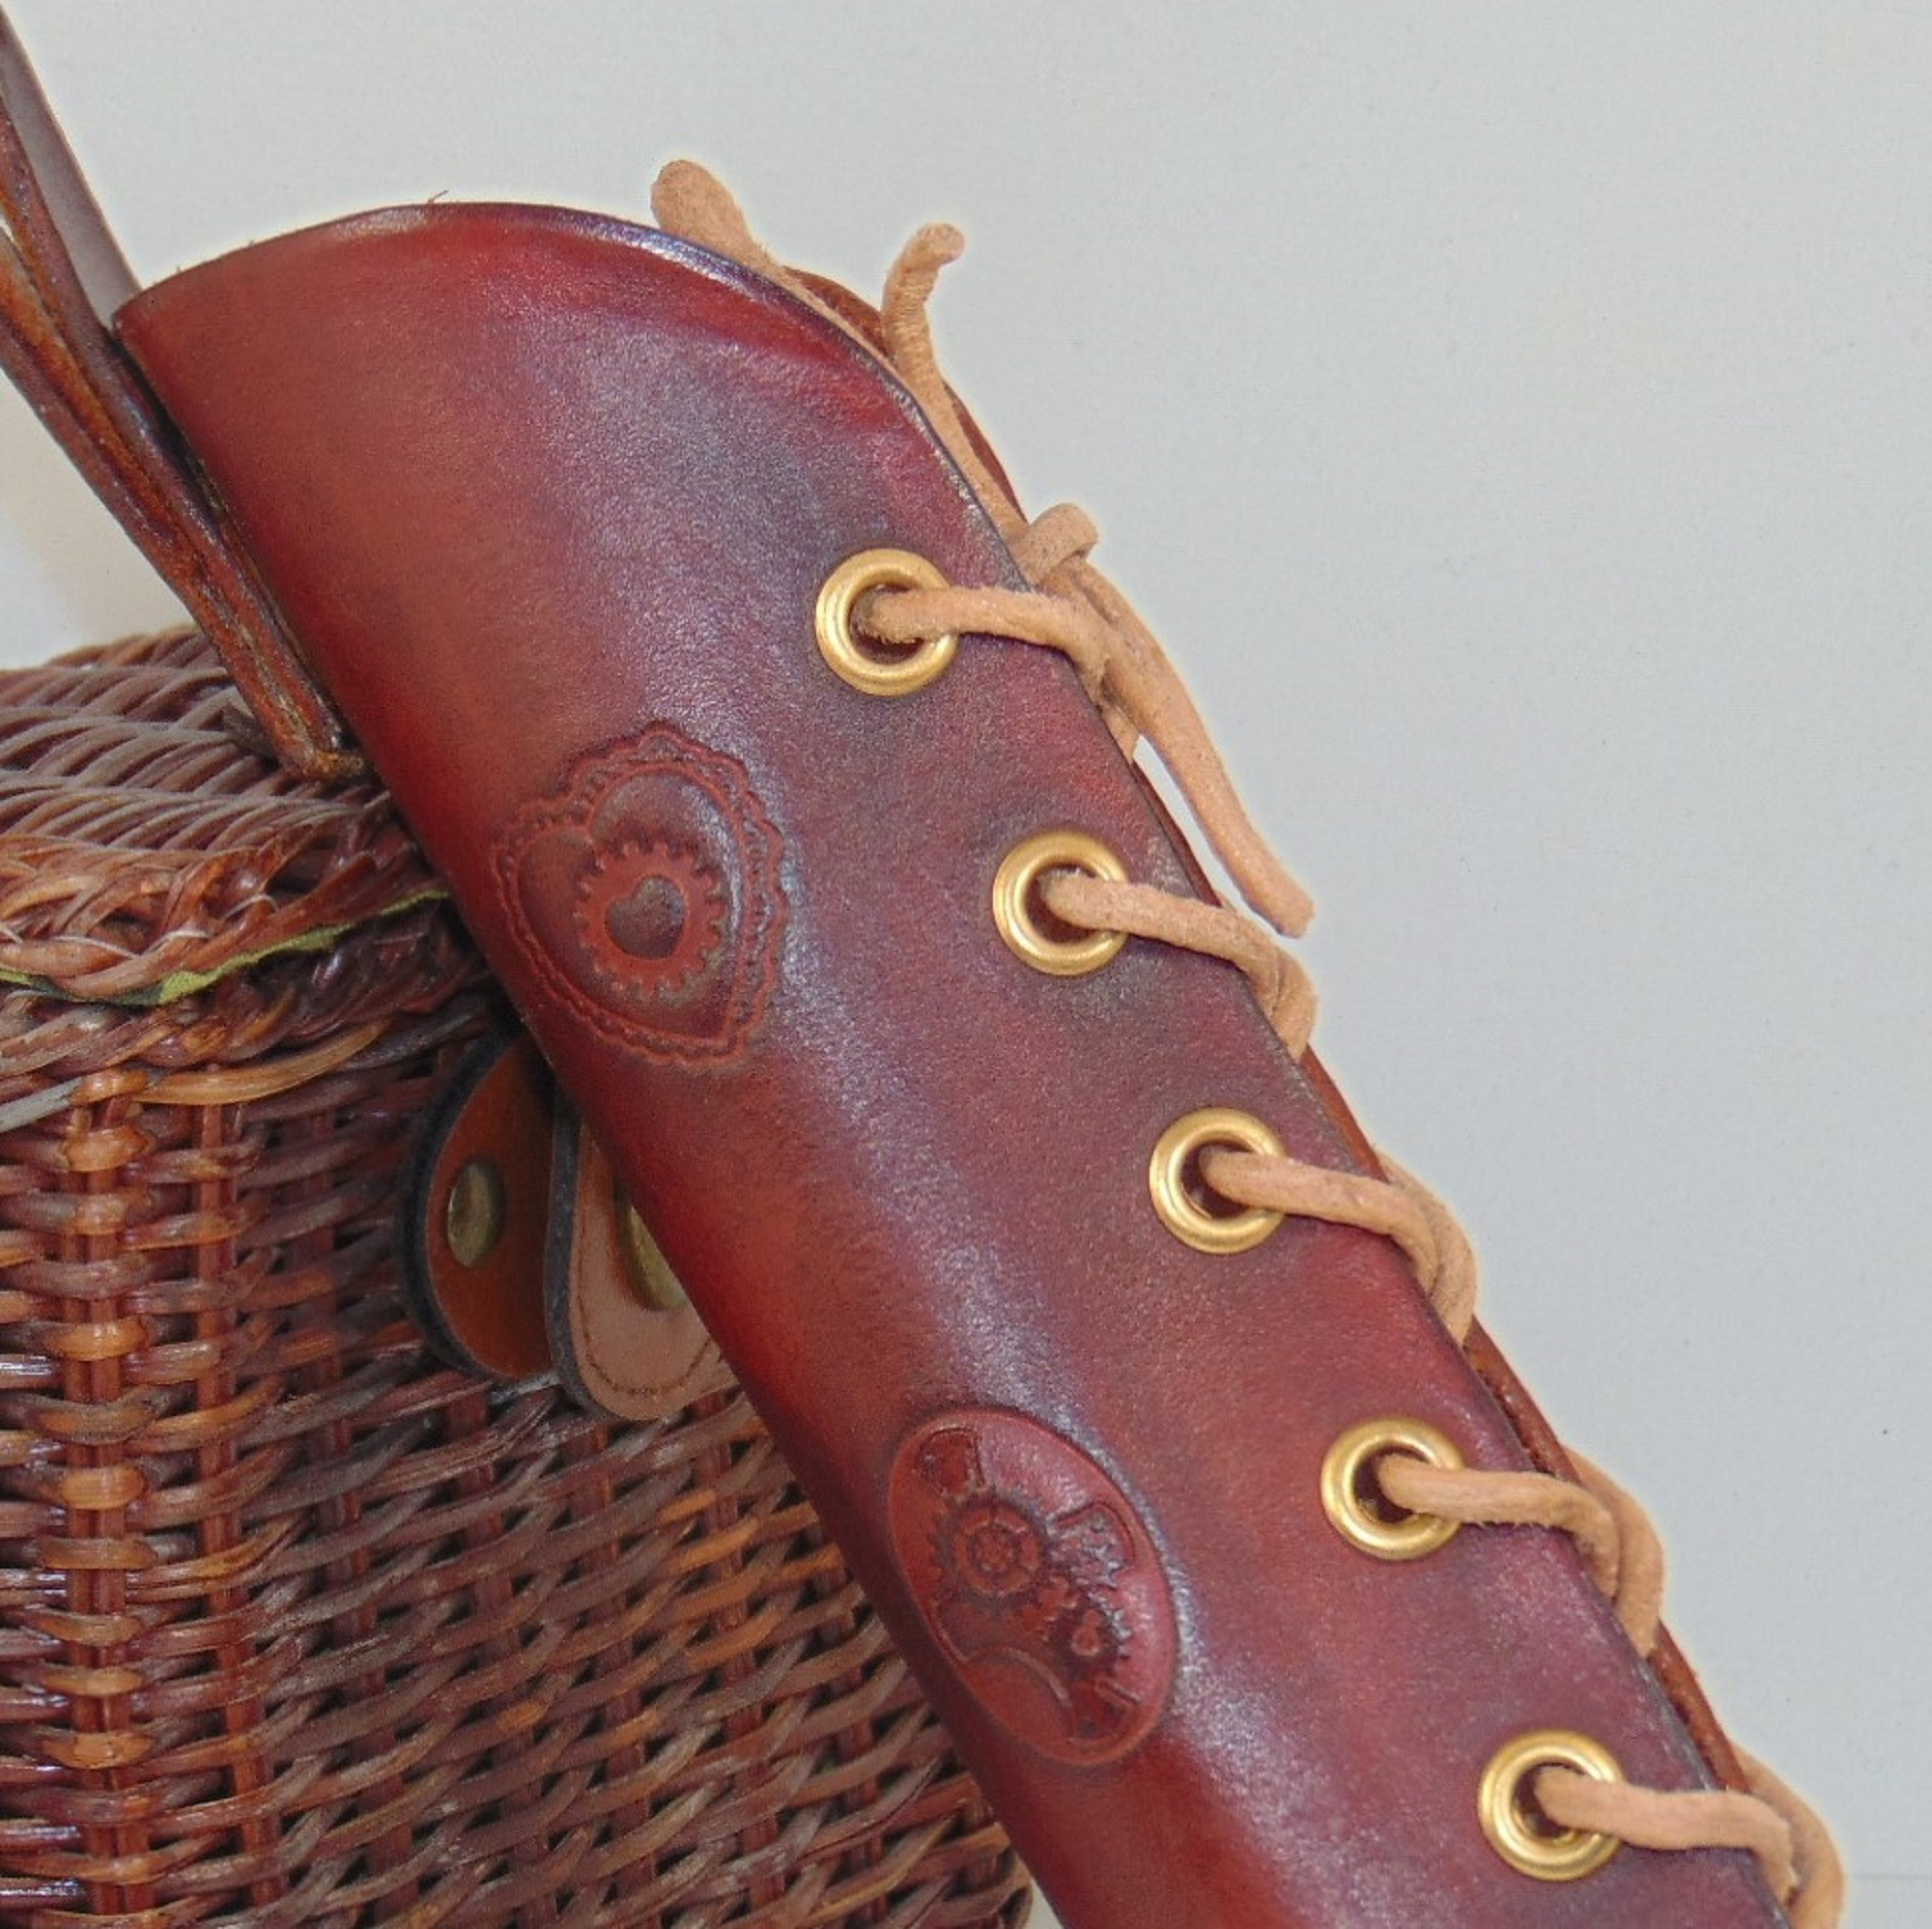 Parasol or Umbrella Holster, handmade in red/brown leather.